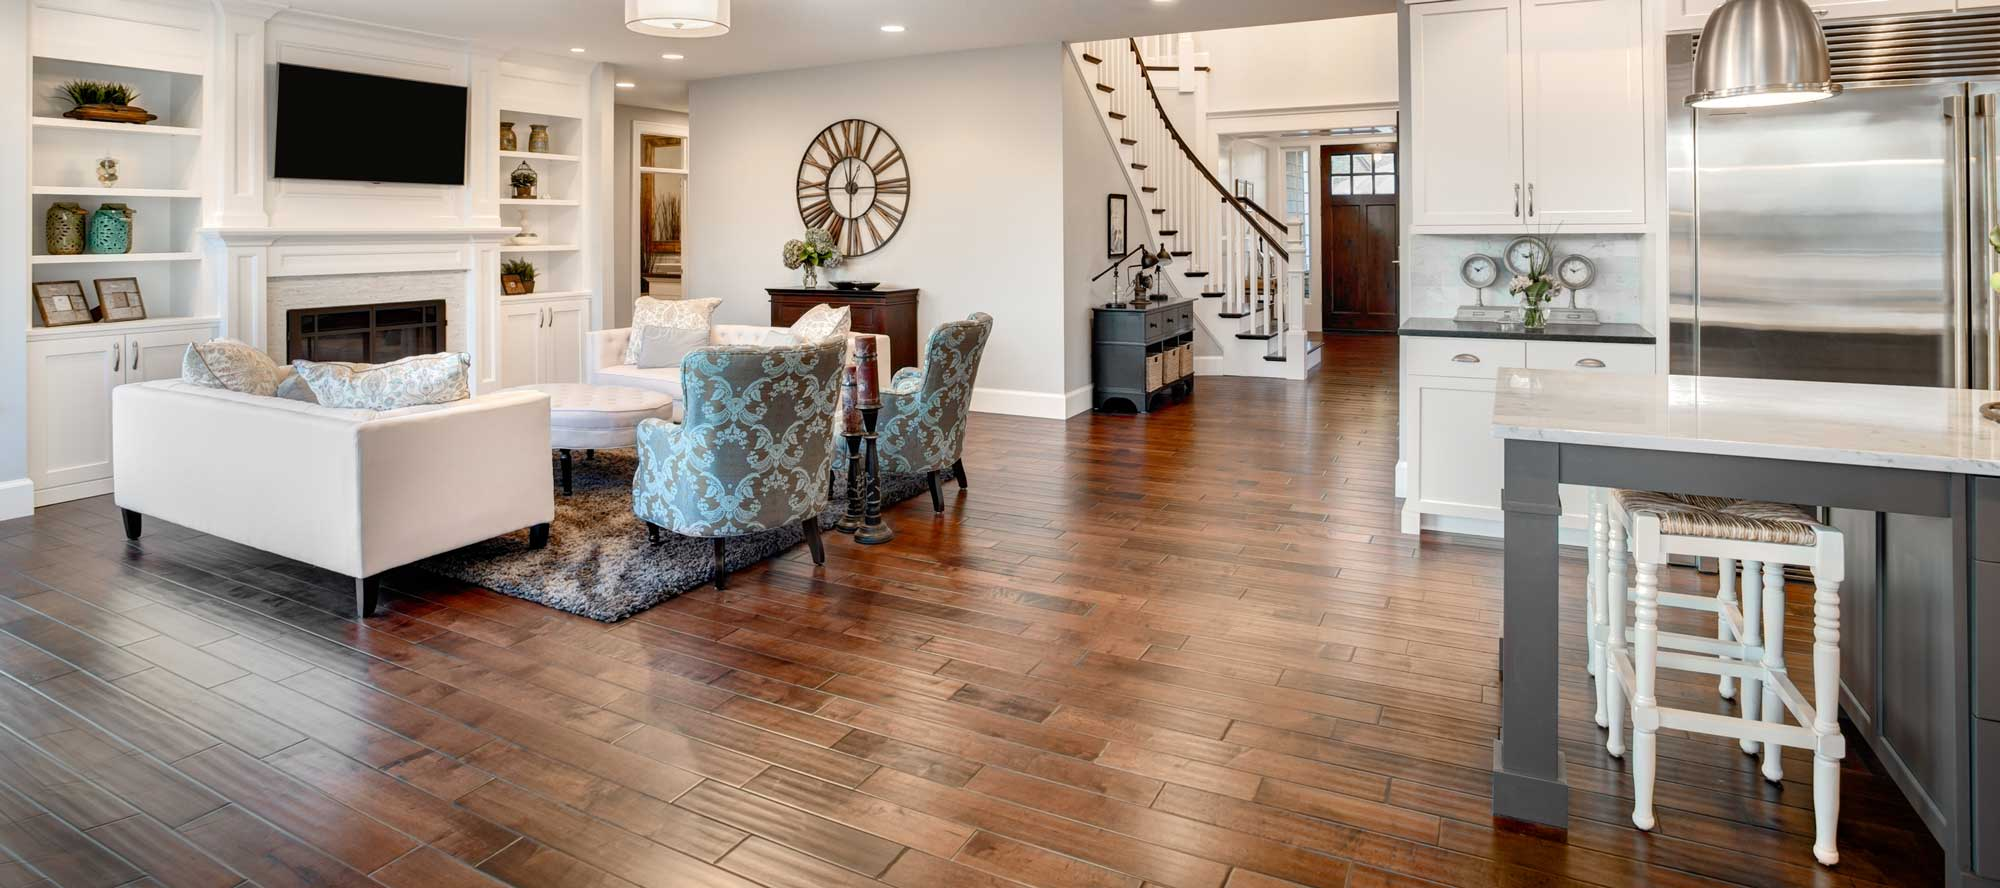 how much does a new hardwood floor cost in 2019 inch calculator. Black Bedroom Furniture Sets. Home Design Ideas